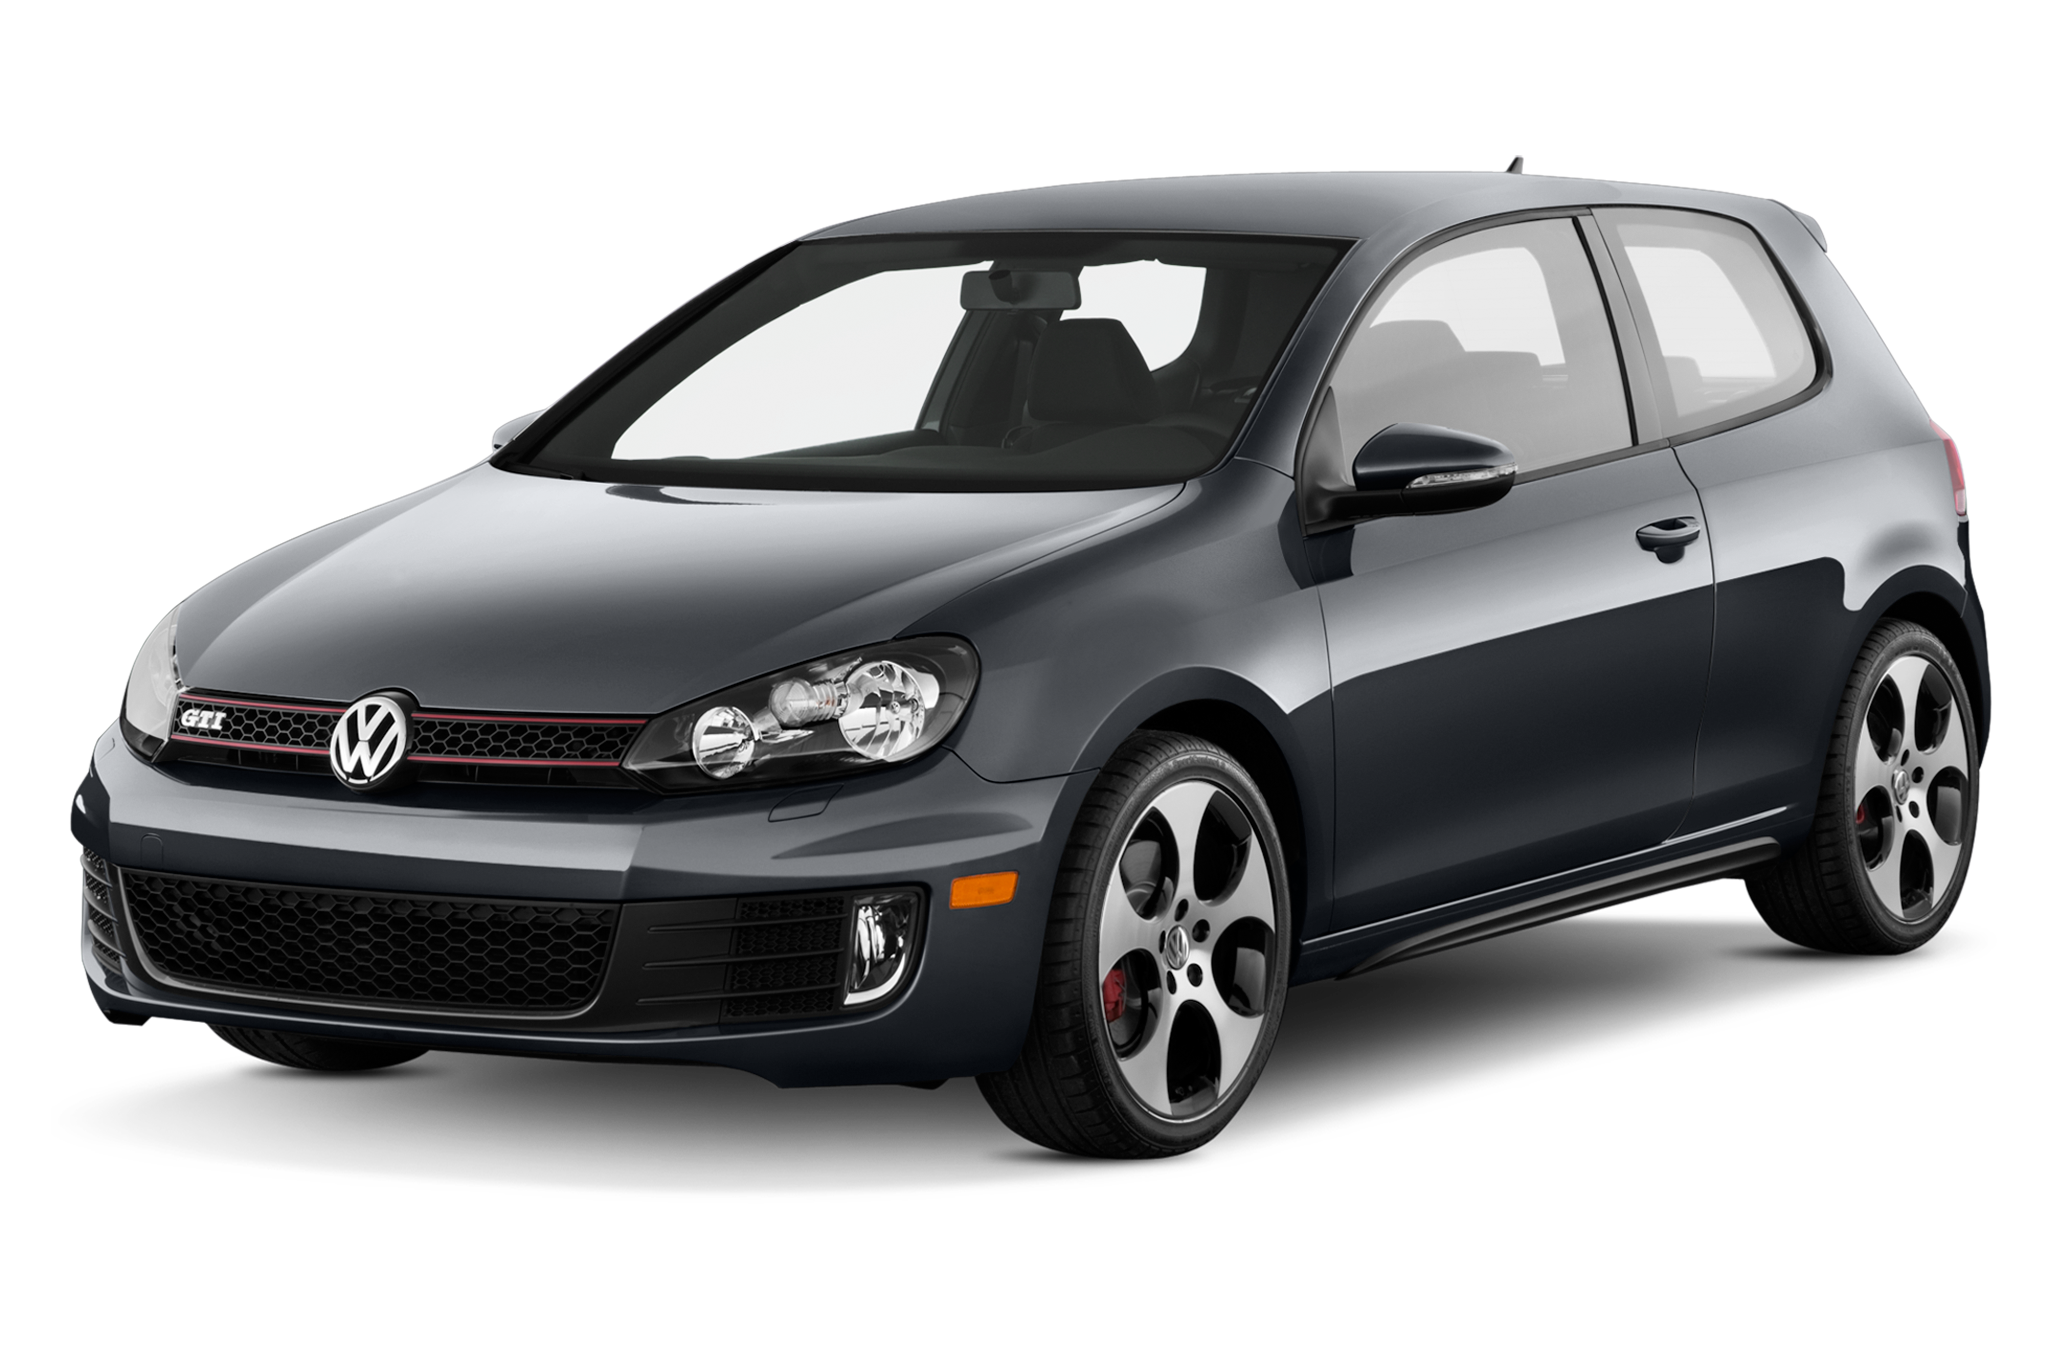 Volkswagen drawing golf gti. How one owner built